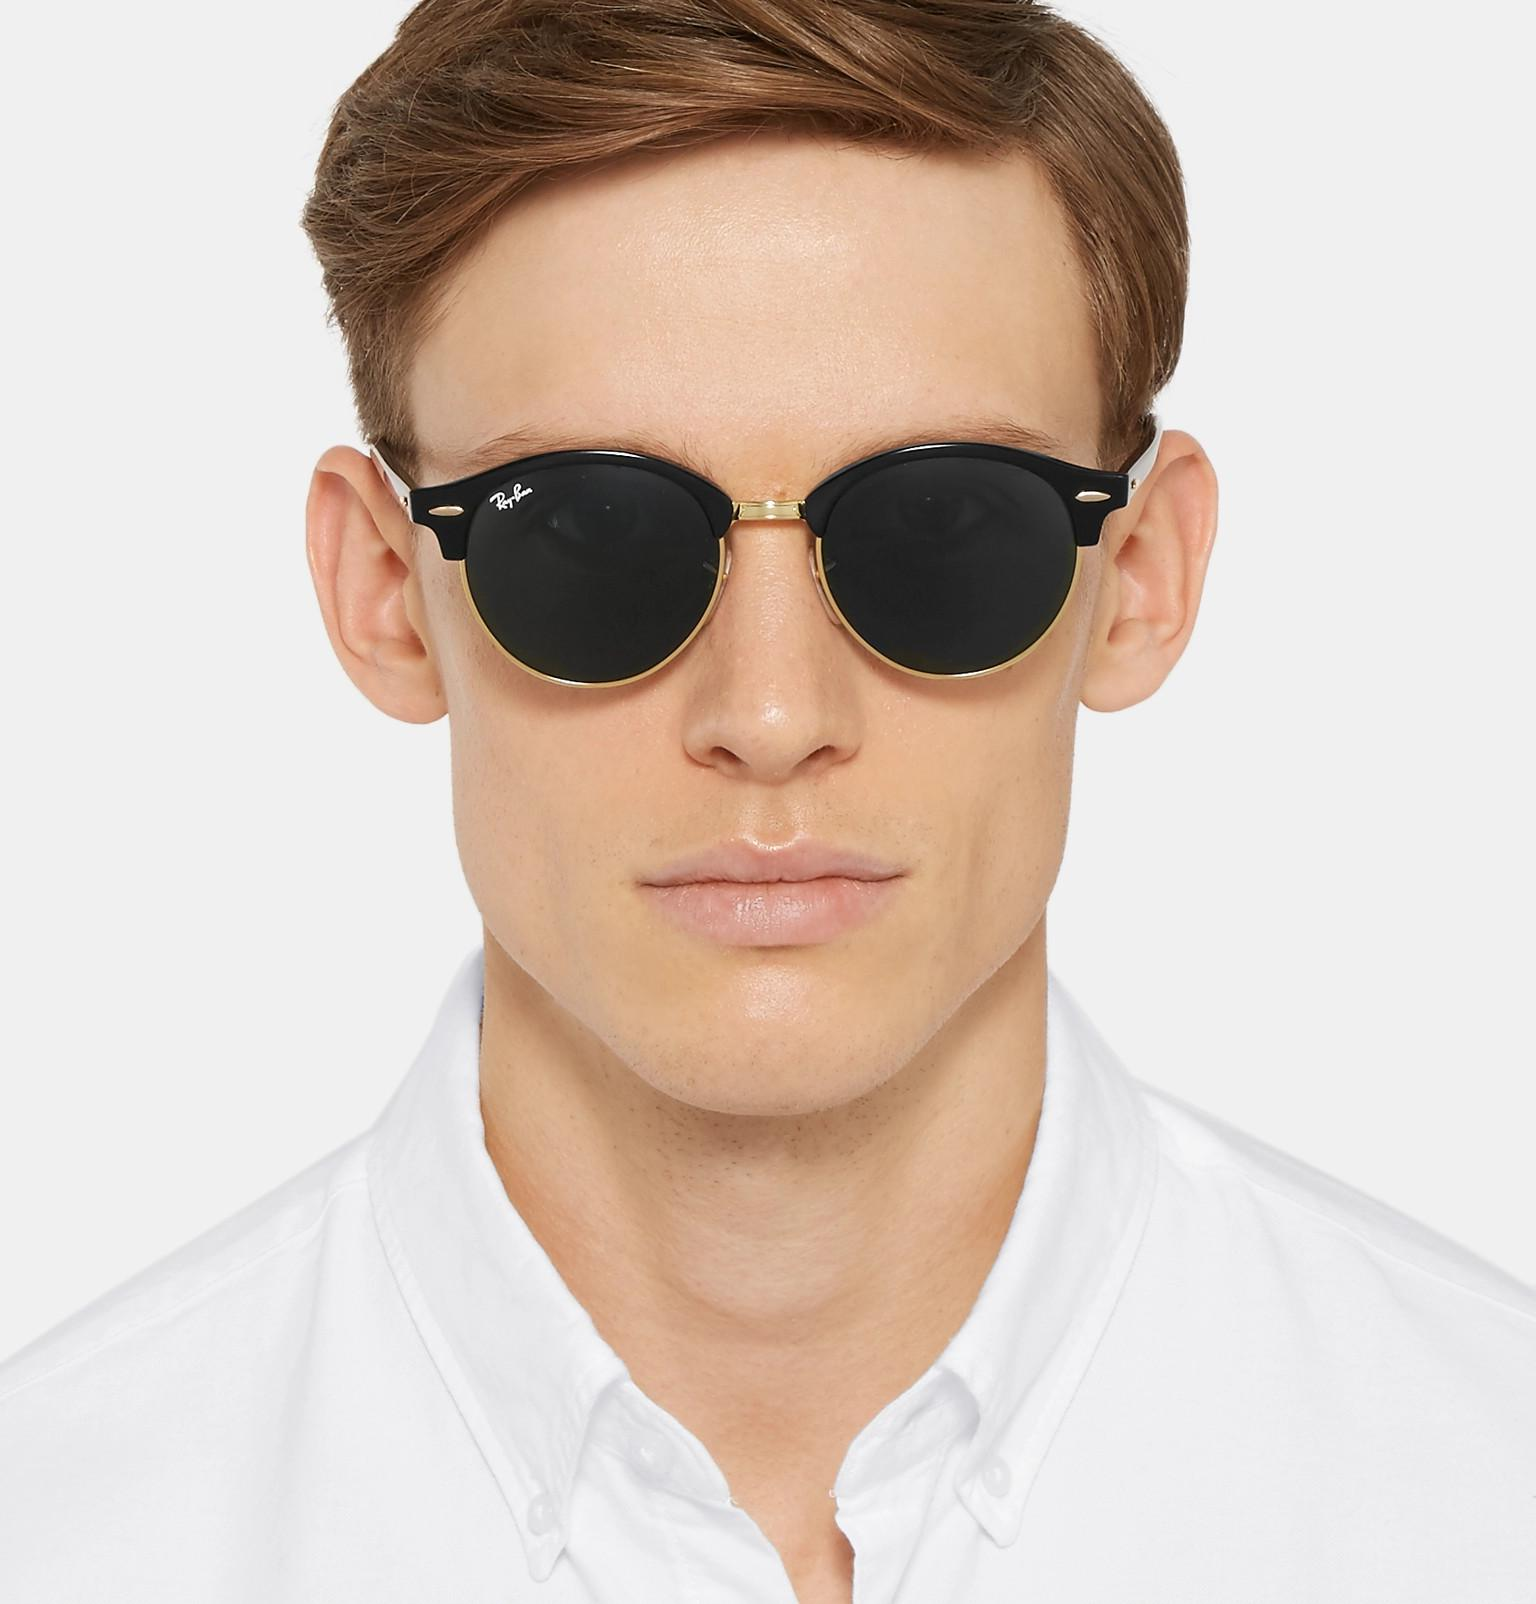 4b1b8a7cf1 Ray-Ban - Black Clubmaster Round-frame Acetate And Gold-tone Polarised  Sunglasses. View fullscreen